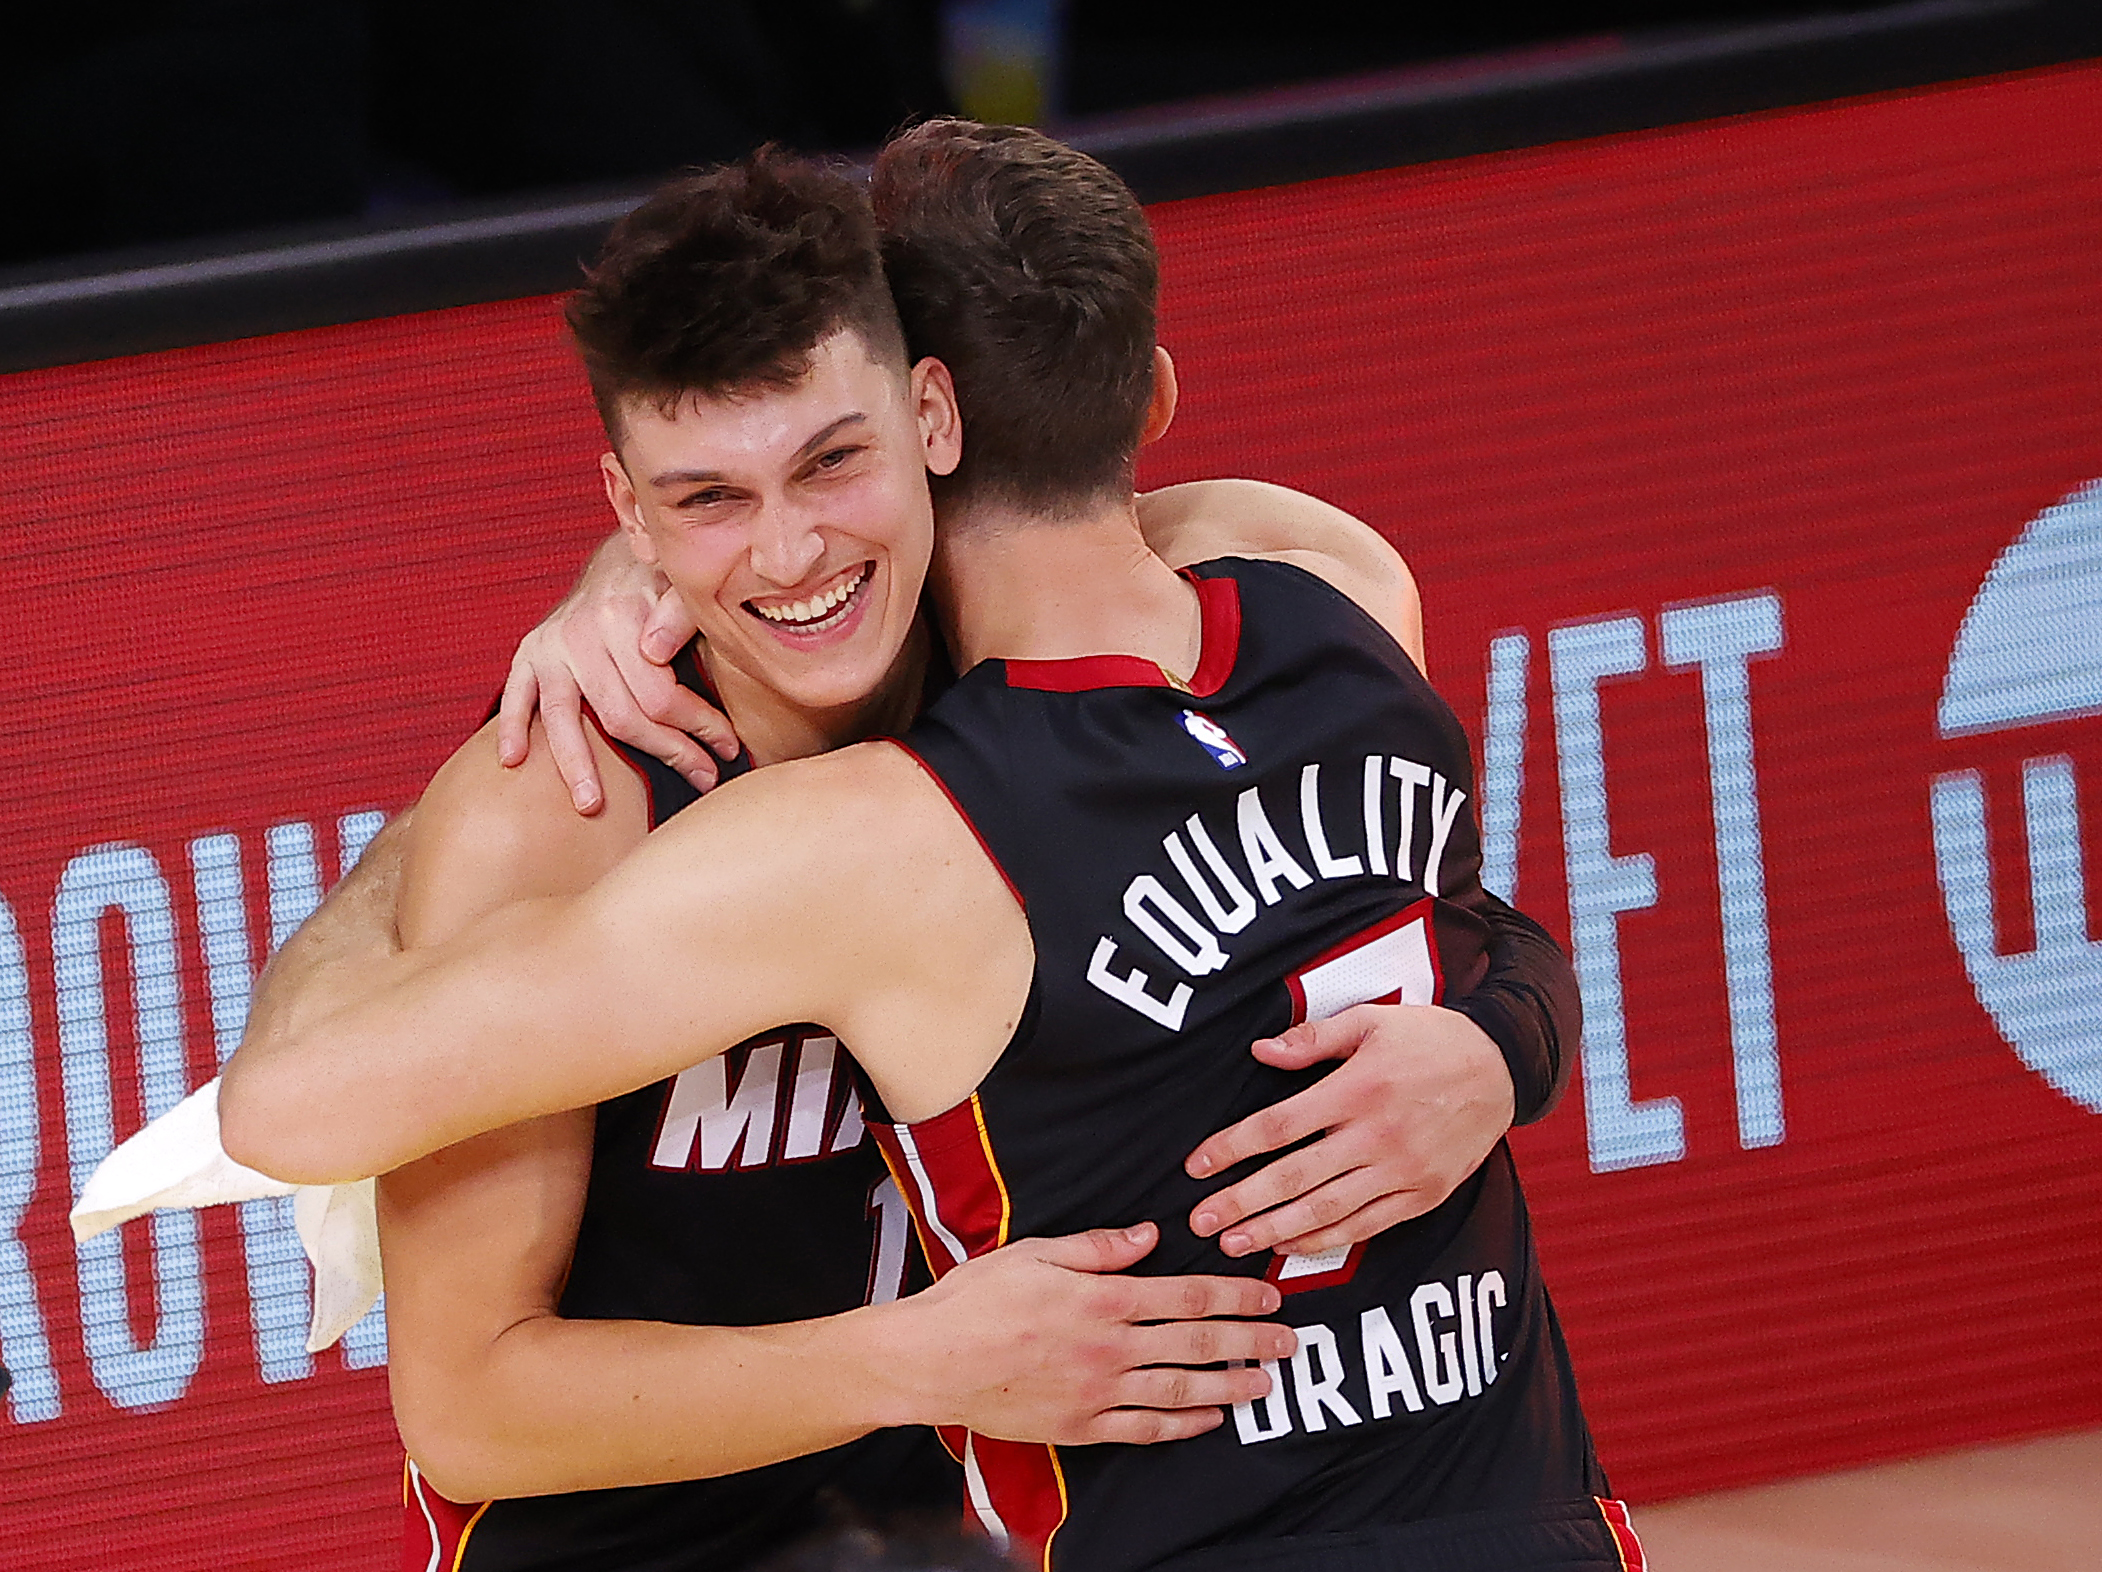 Tyler Herro #14 of the Miami Heat and Goran Dragic #7 of the Miami Heat react after their win over the Boston Celtics in Game Four of the Eastern Conference Finals.